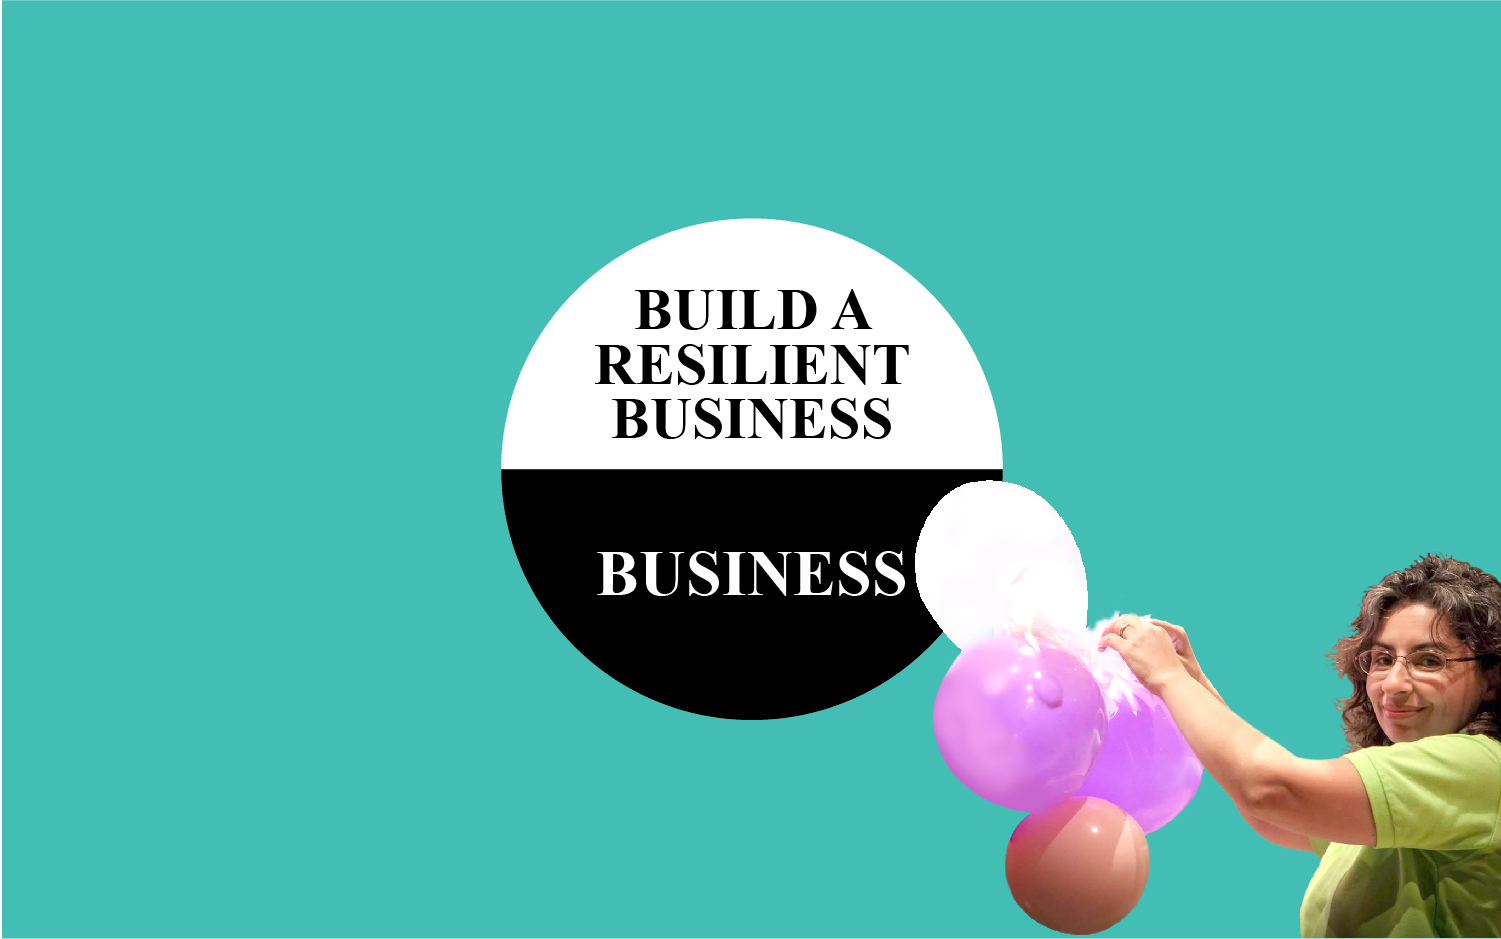 Build a Resilient Business